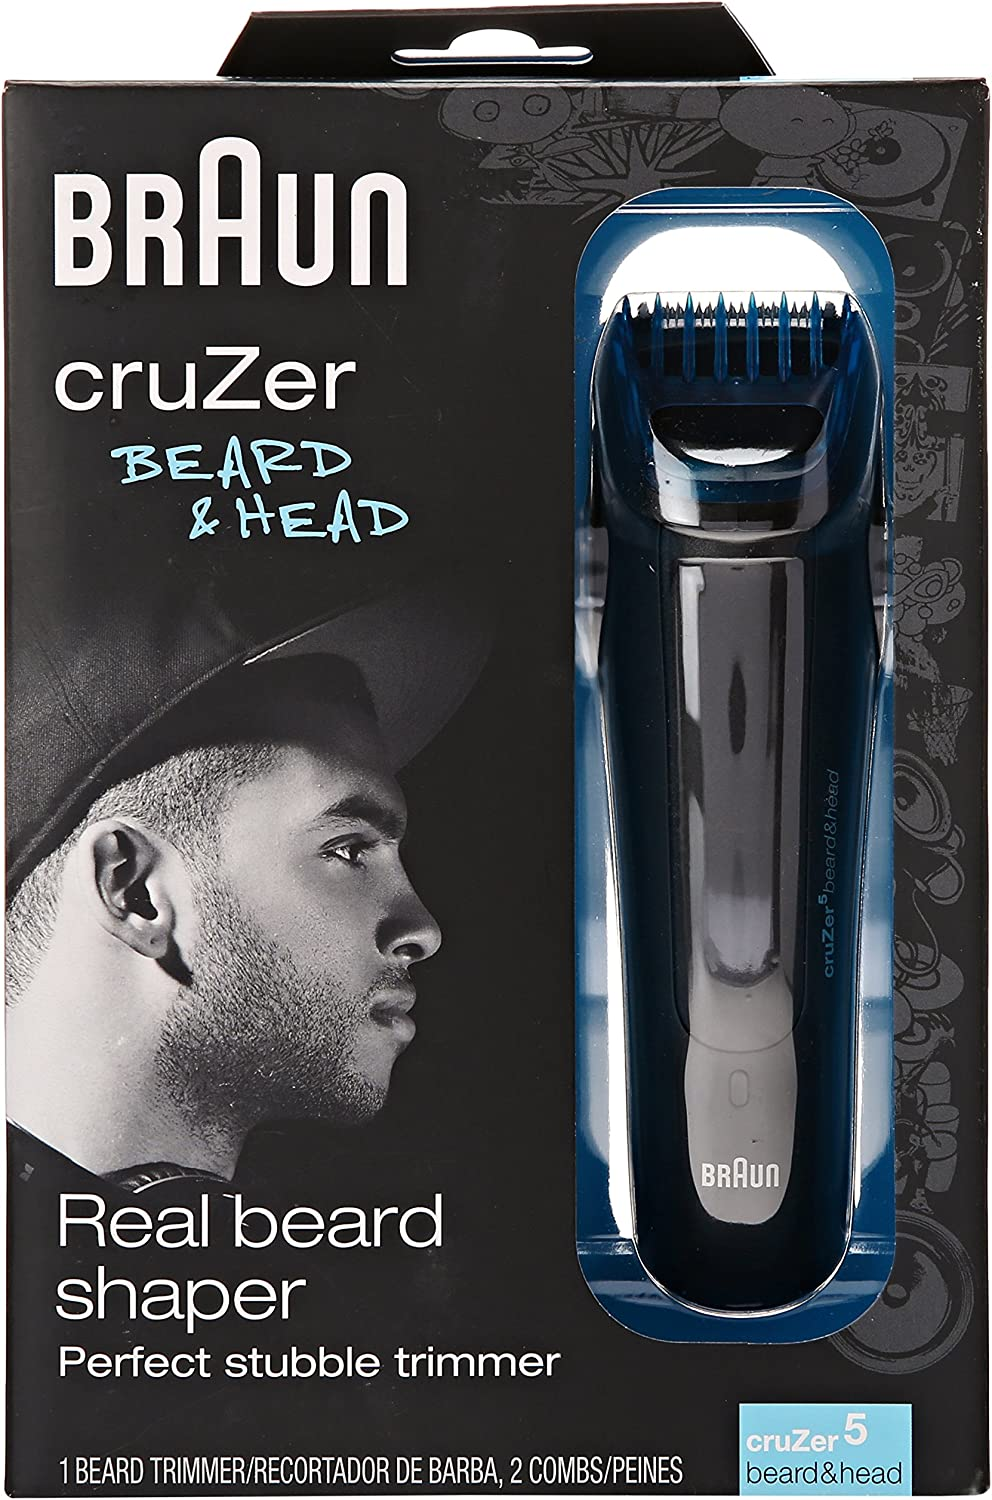 Braun Cruzer 5 Beard Trimmer, Beard and Head: Amazon.es: Salud y ...